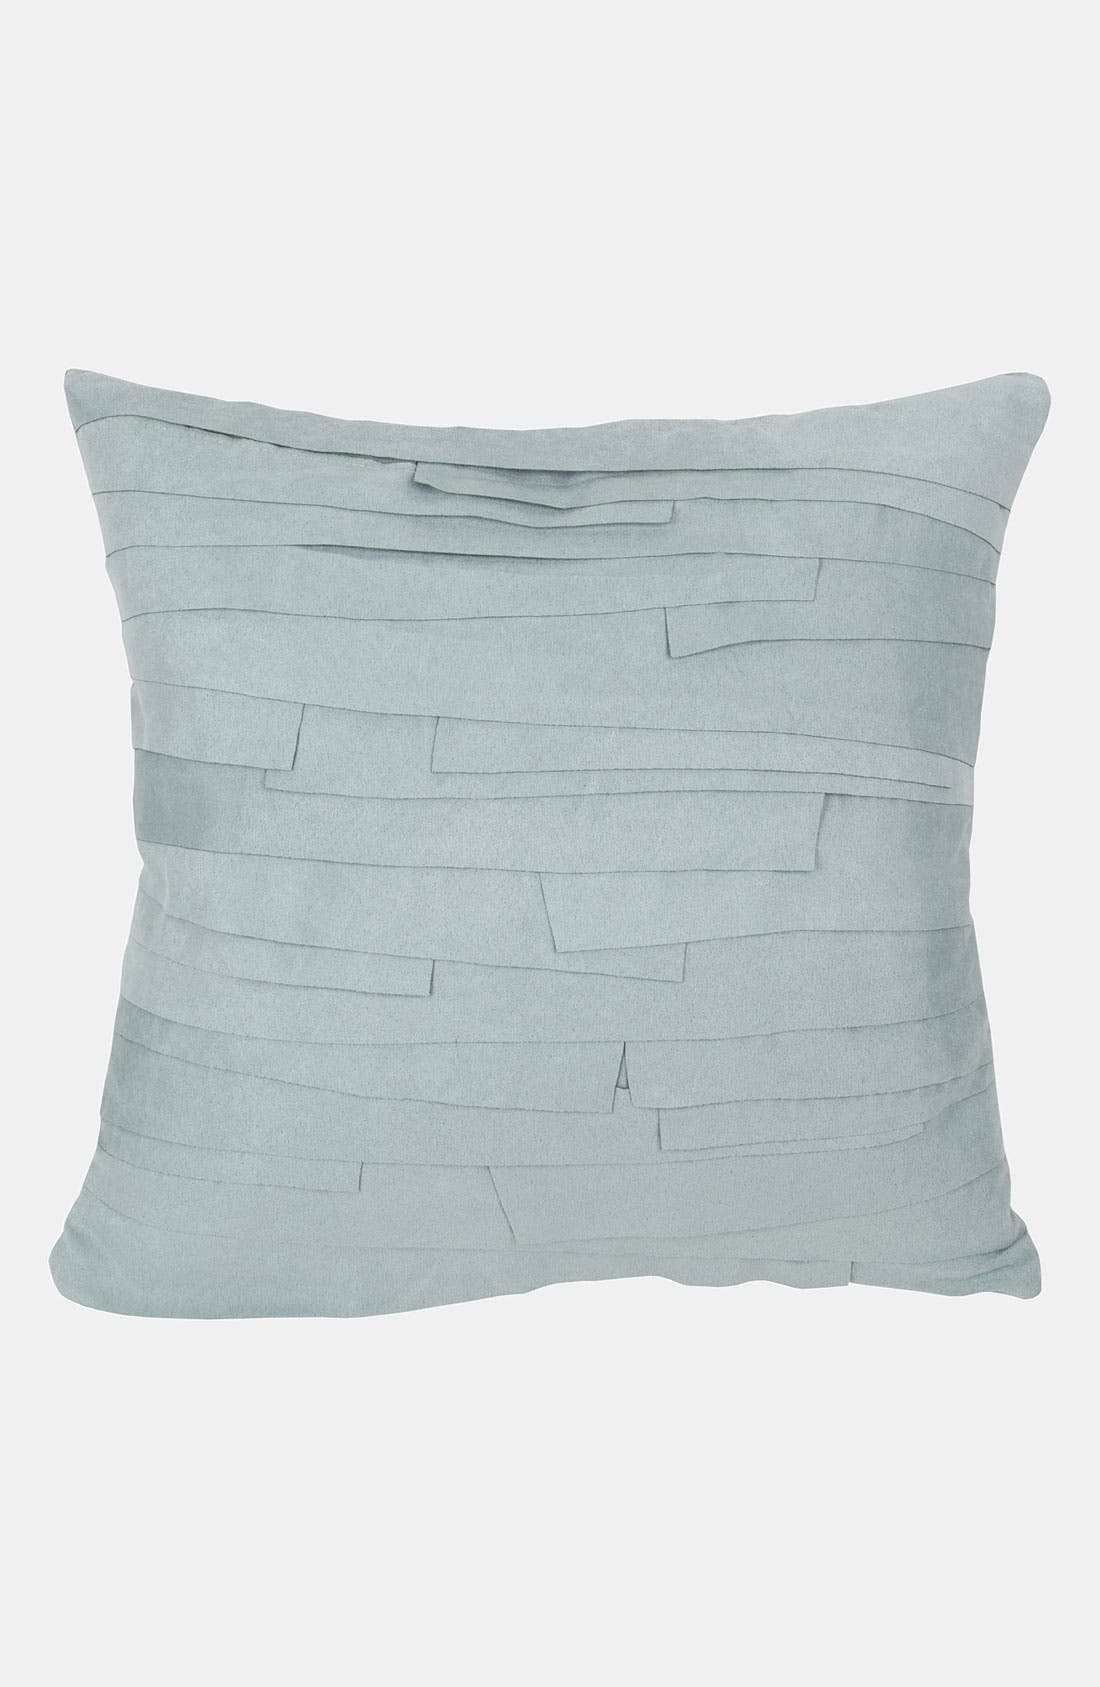 Main Image - Blissliving Home 'Yves' Pillow (Online Only)